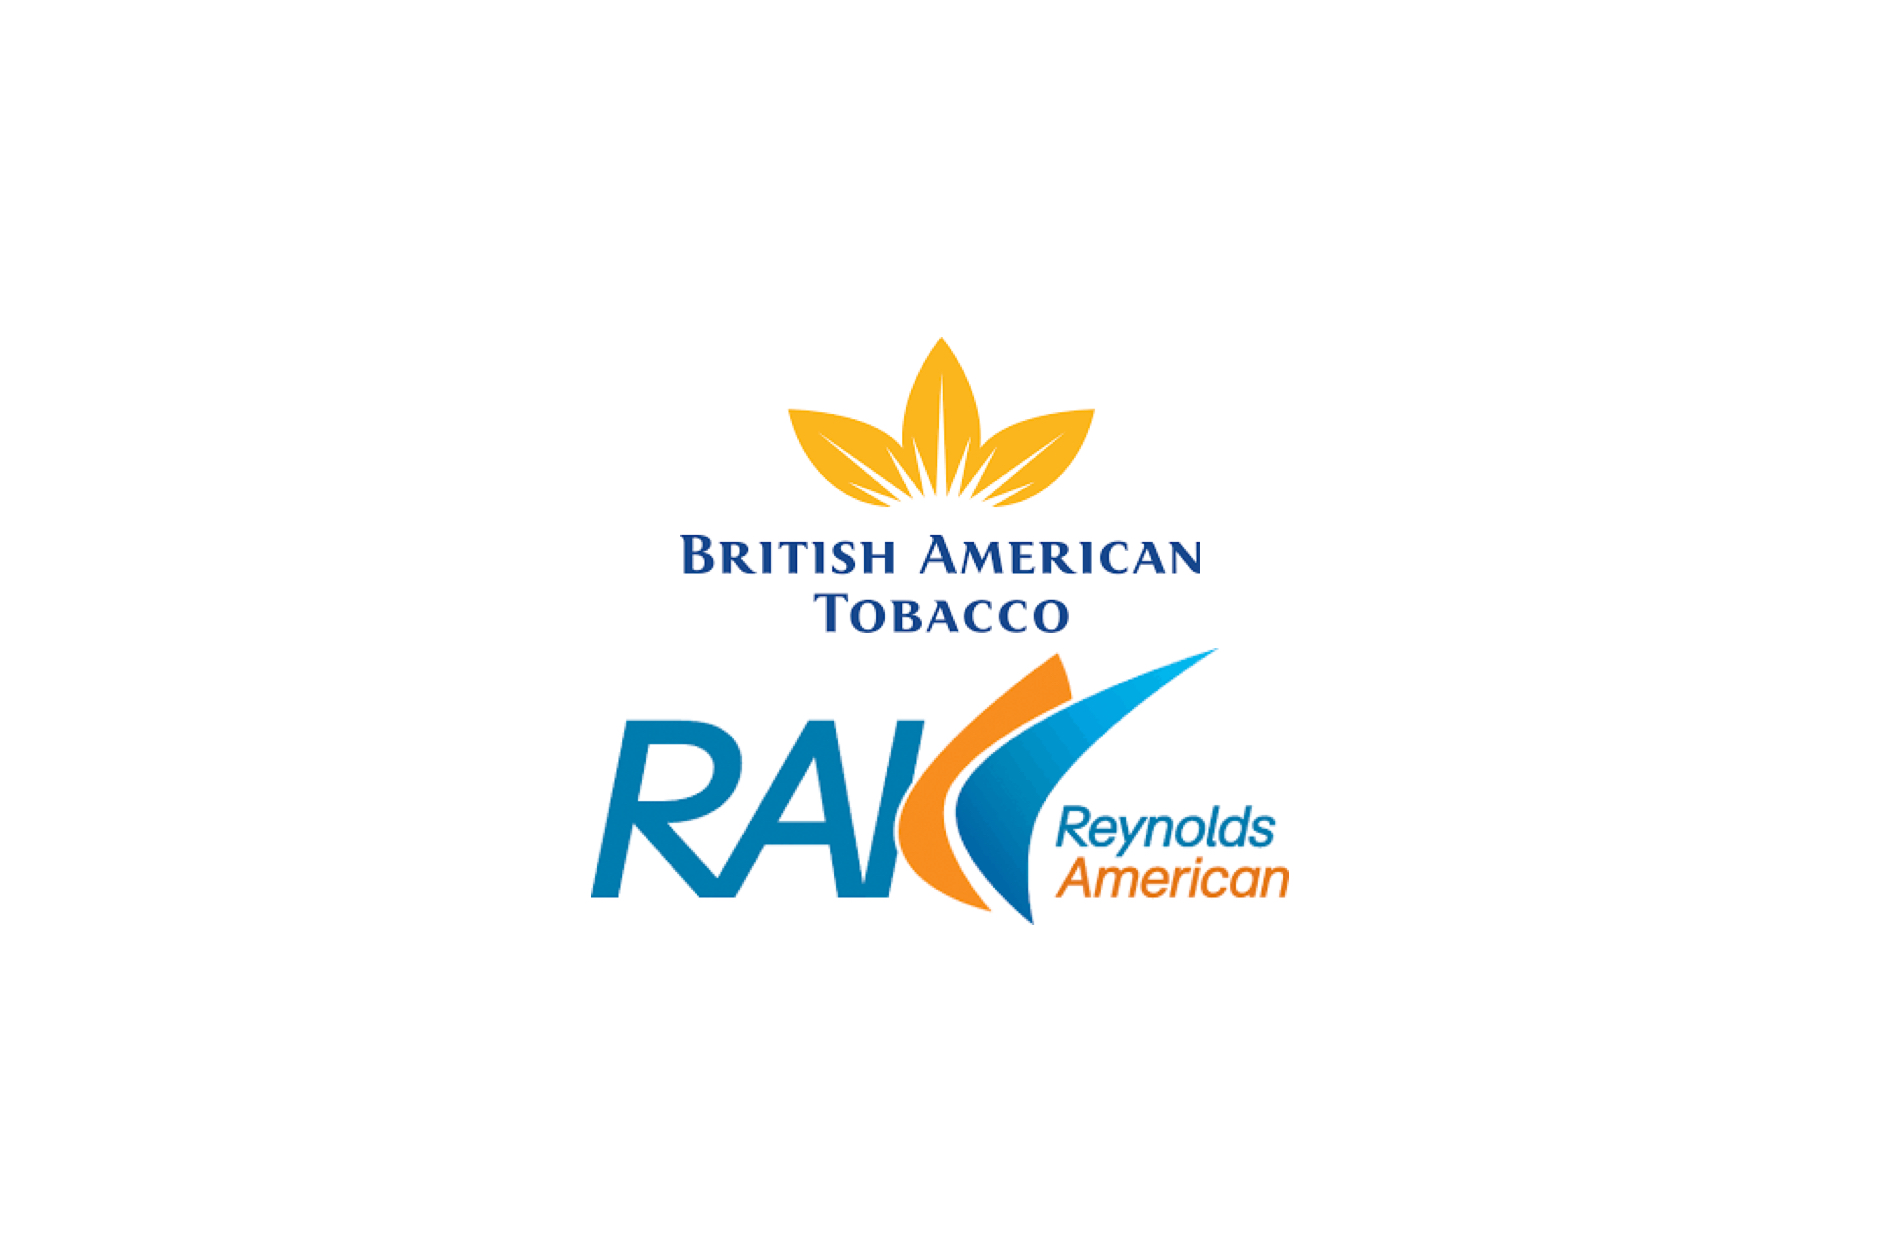 british american tobacco marketing strategy Corporate strategy of british american tobacco bangladesh british american tobacco bangladesh company limited is a subsidiary of british american tobacco and is one of the 68 countries in which bat has manufacturing plants.